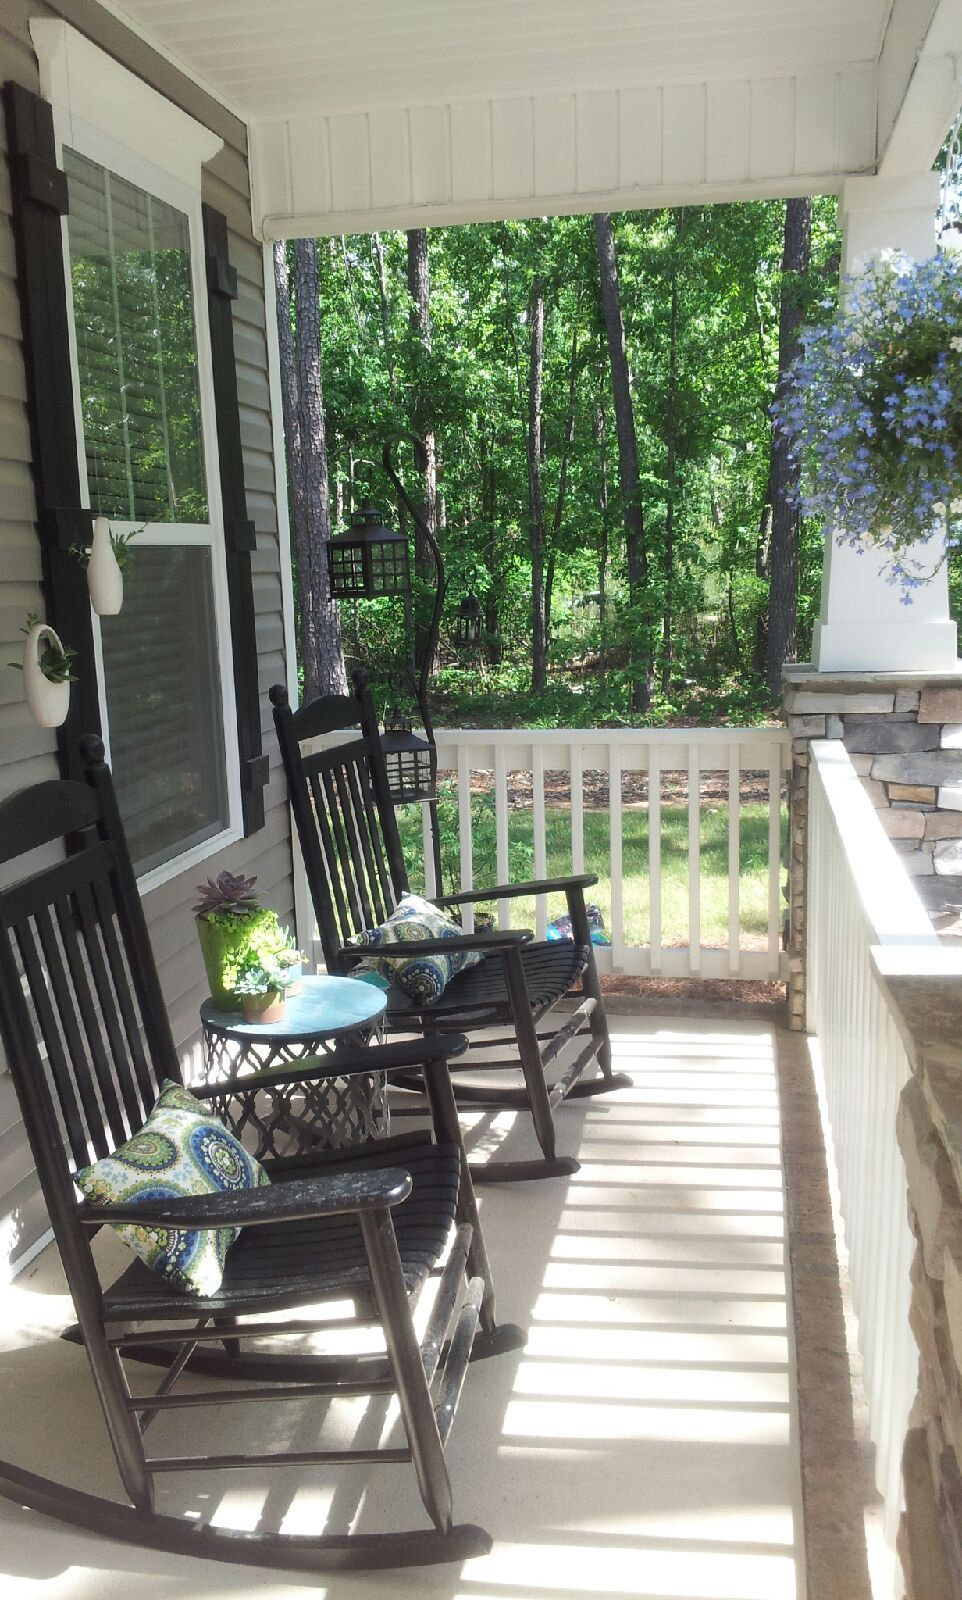 My southern front porch design. The black rocking chairs